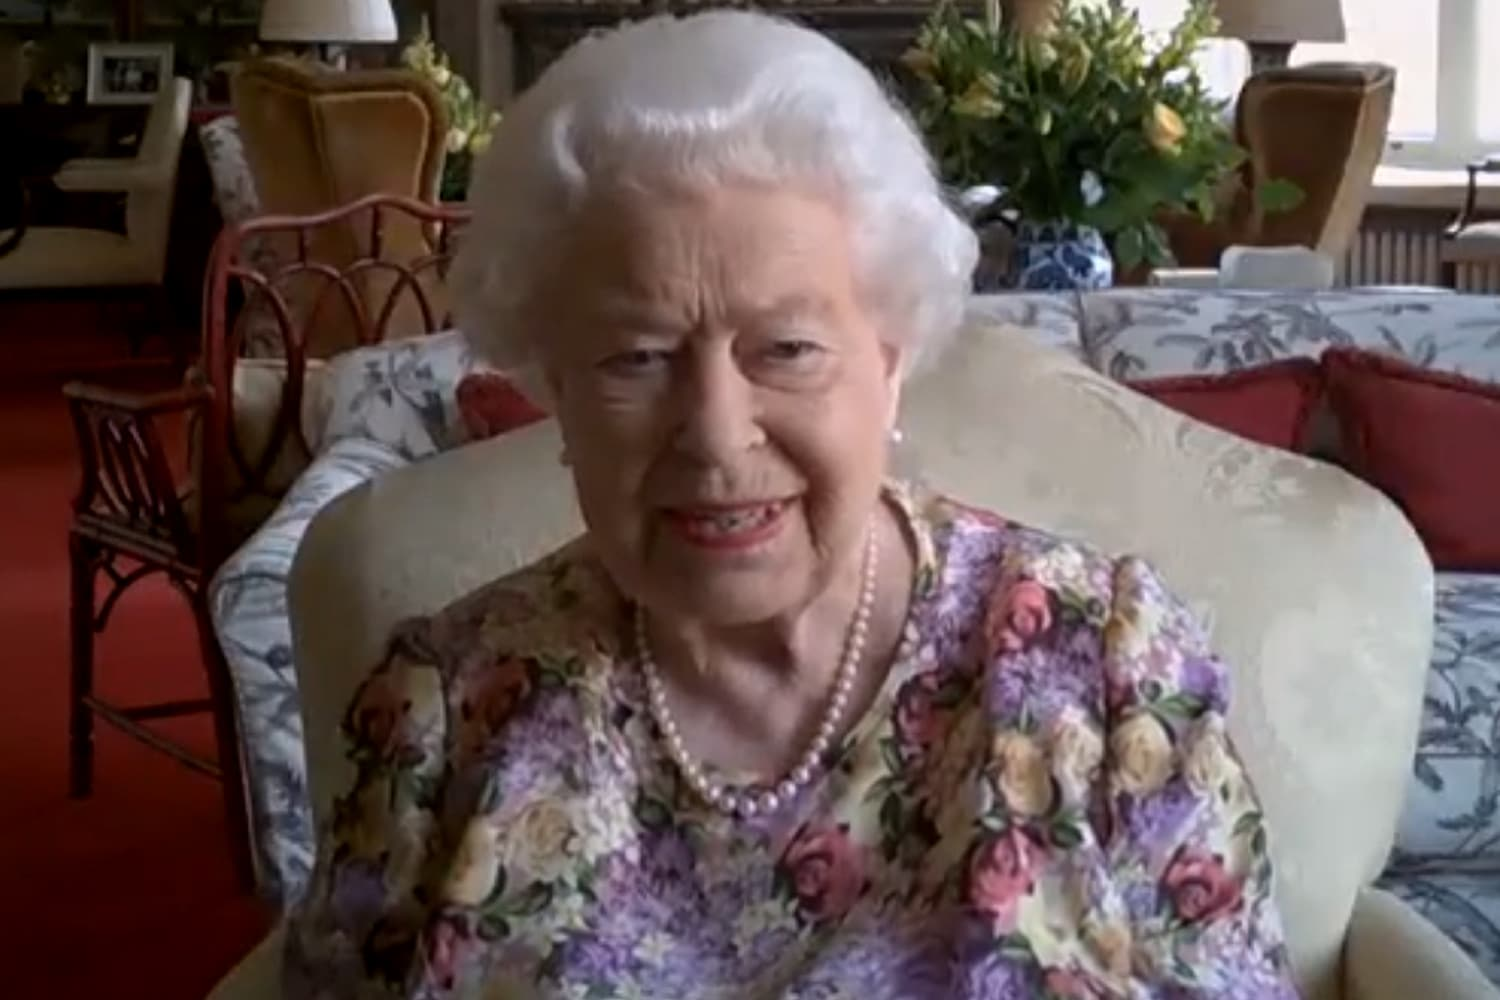 Queen Elizabeth II Salutes Caregivers In New Public Video With Daughter Princess Anne